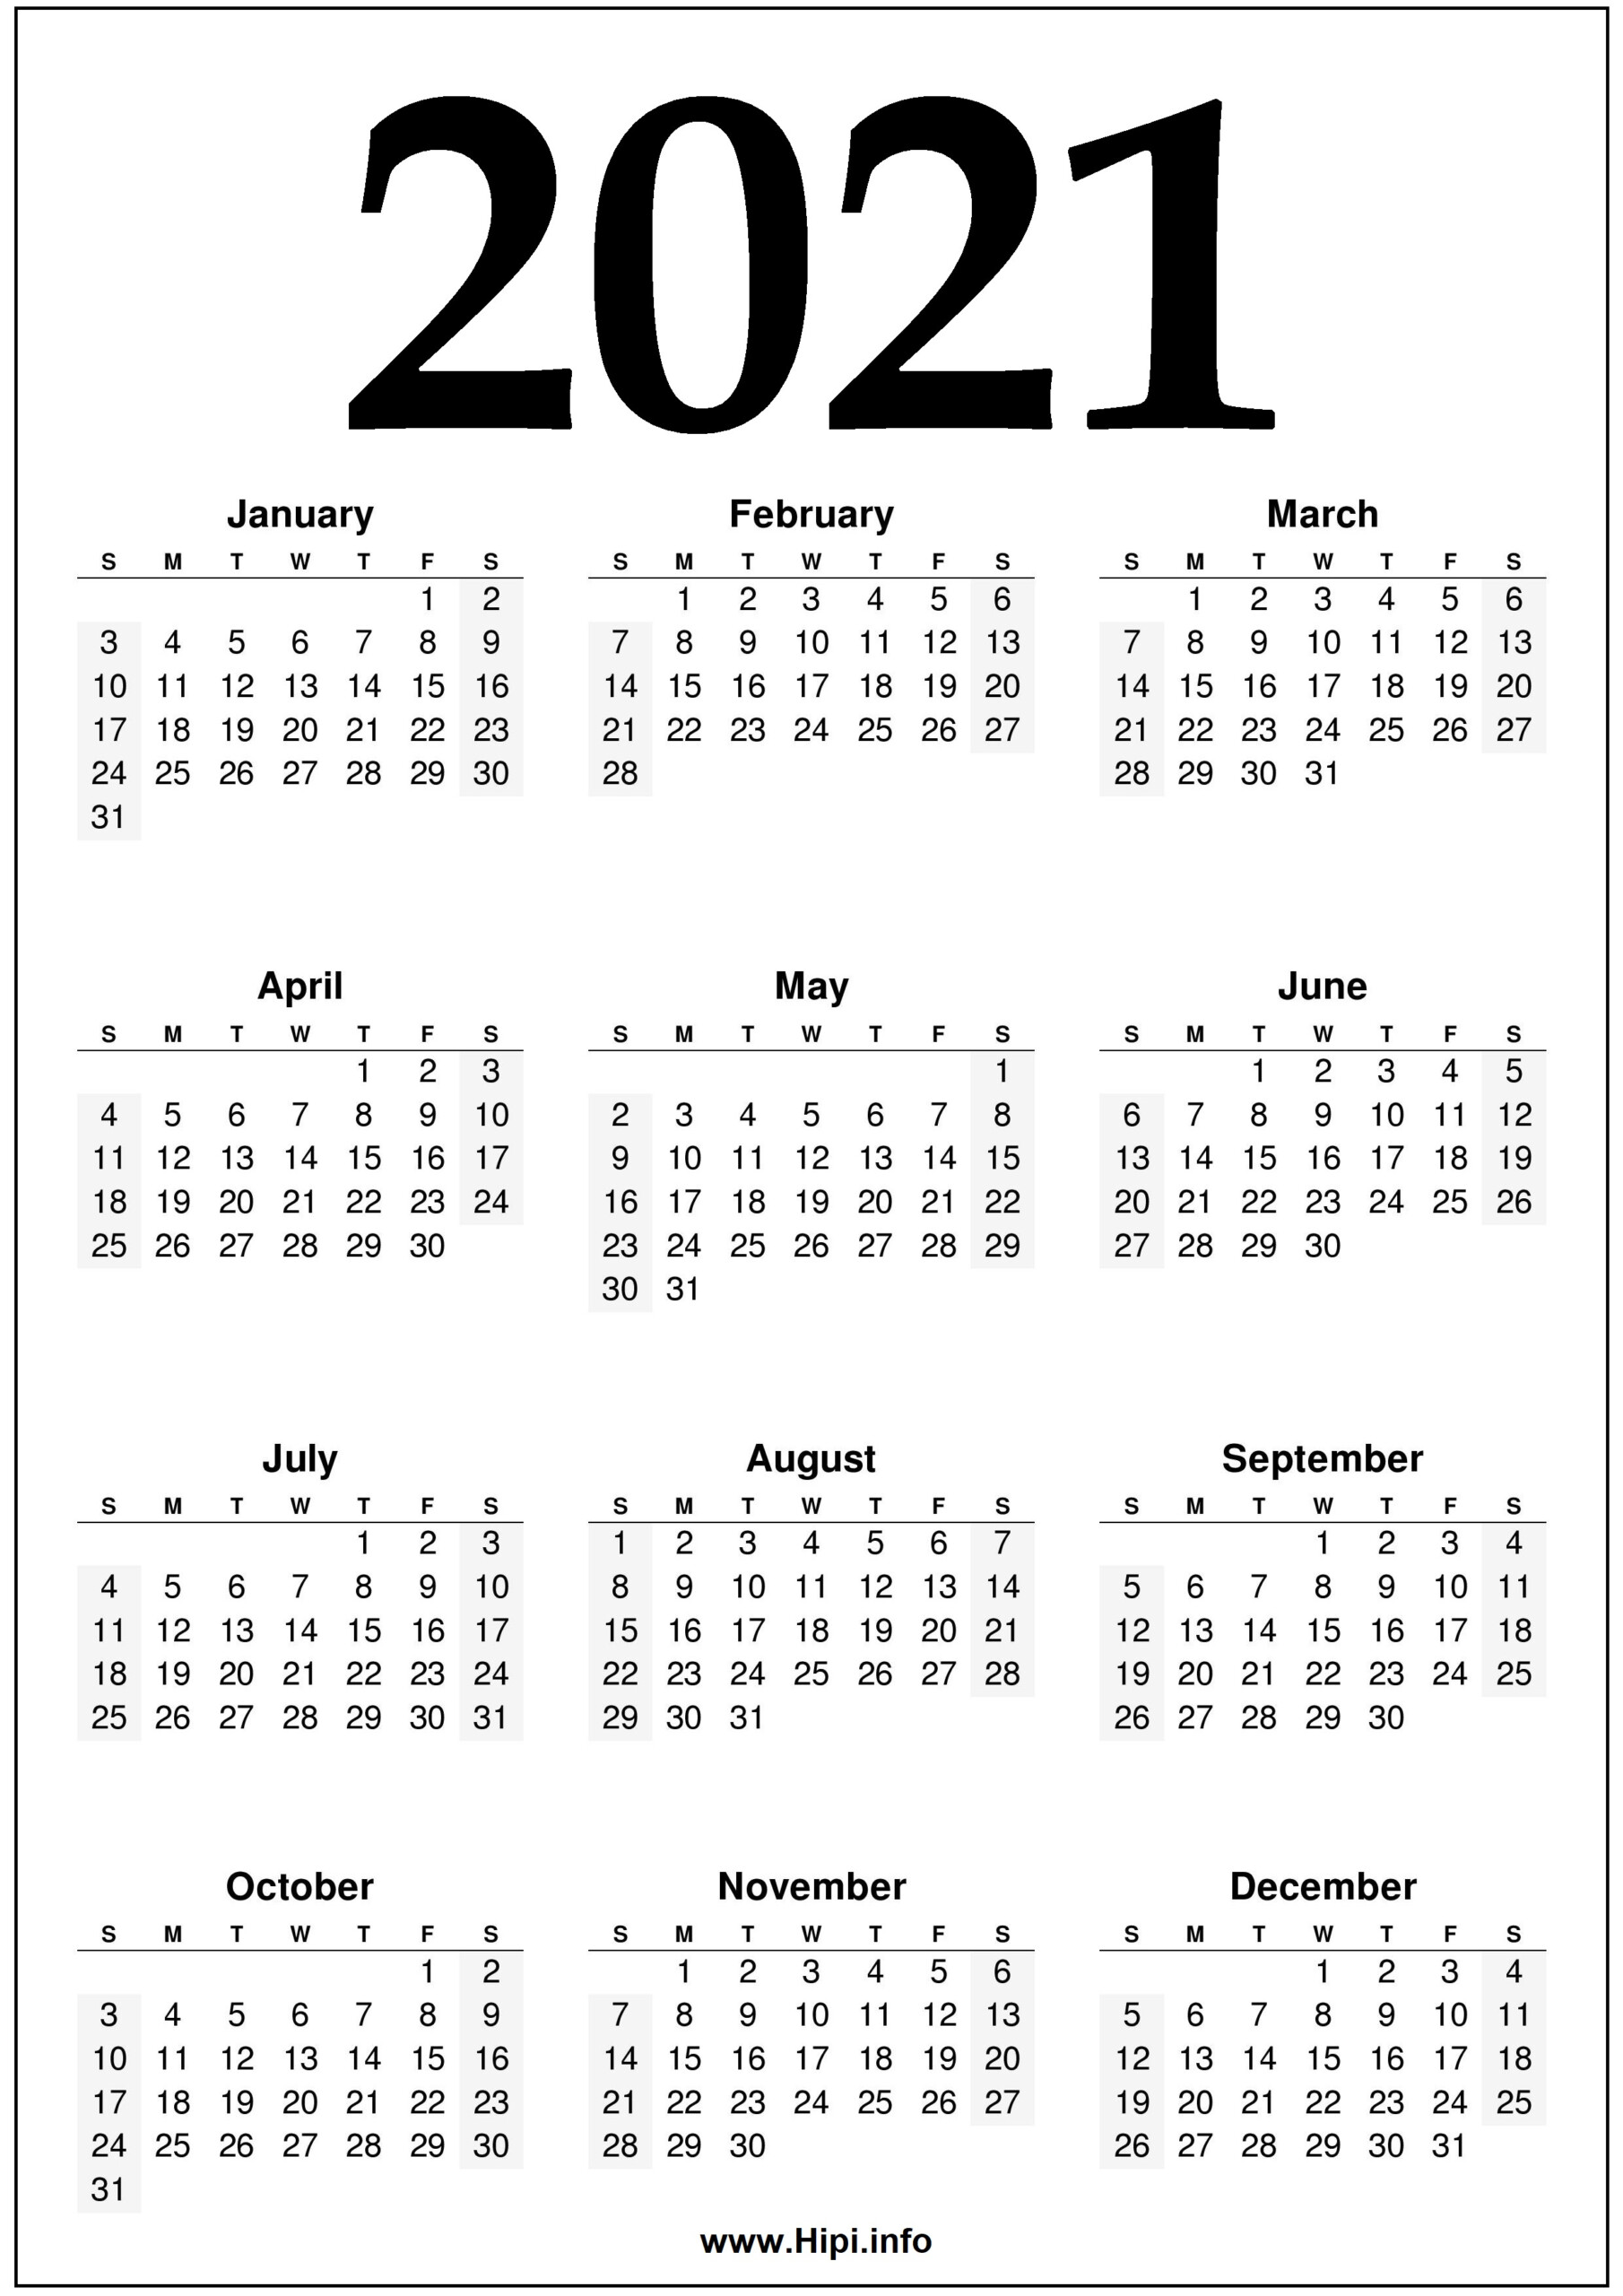 2021 Year 2021 Calendar Printable - Black And White - Hipi